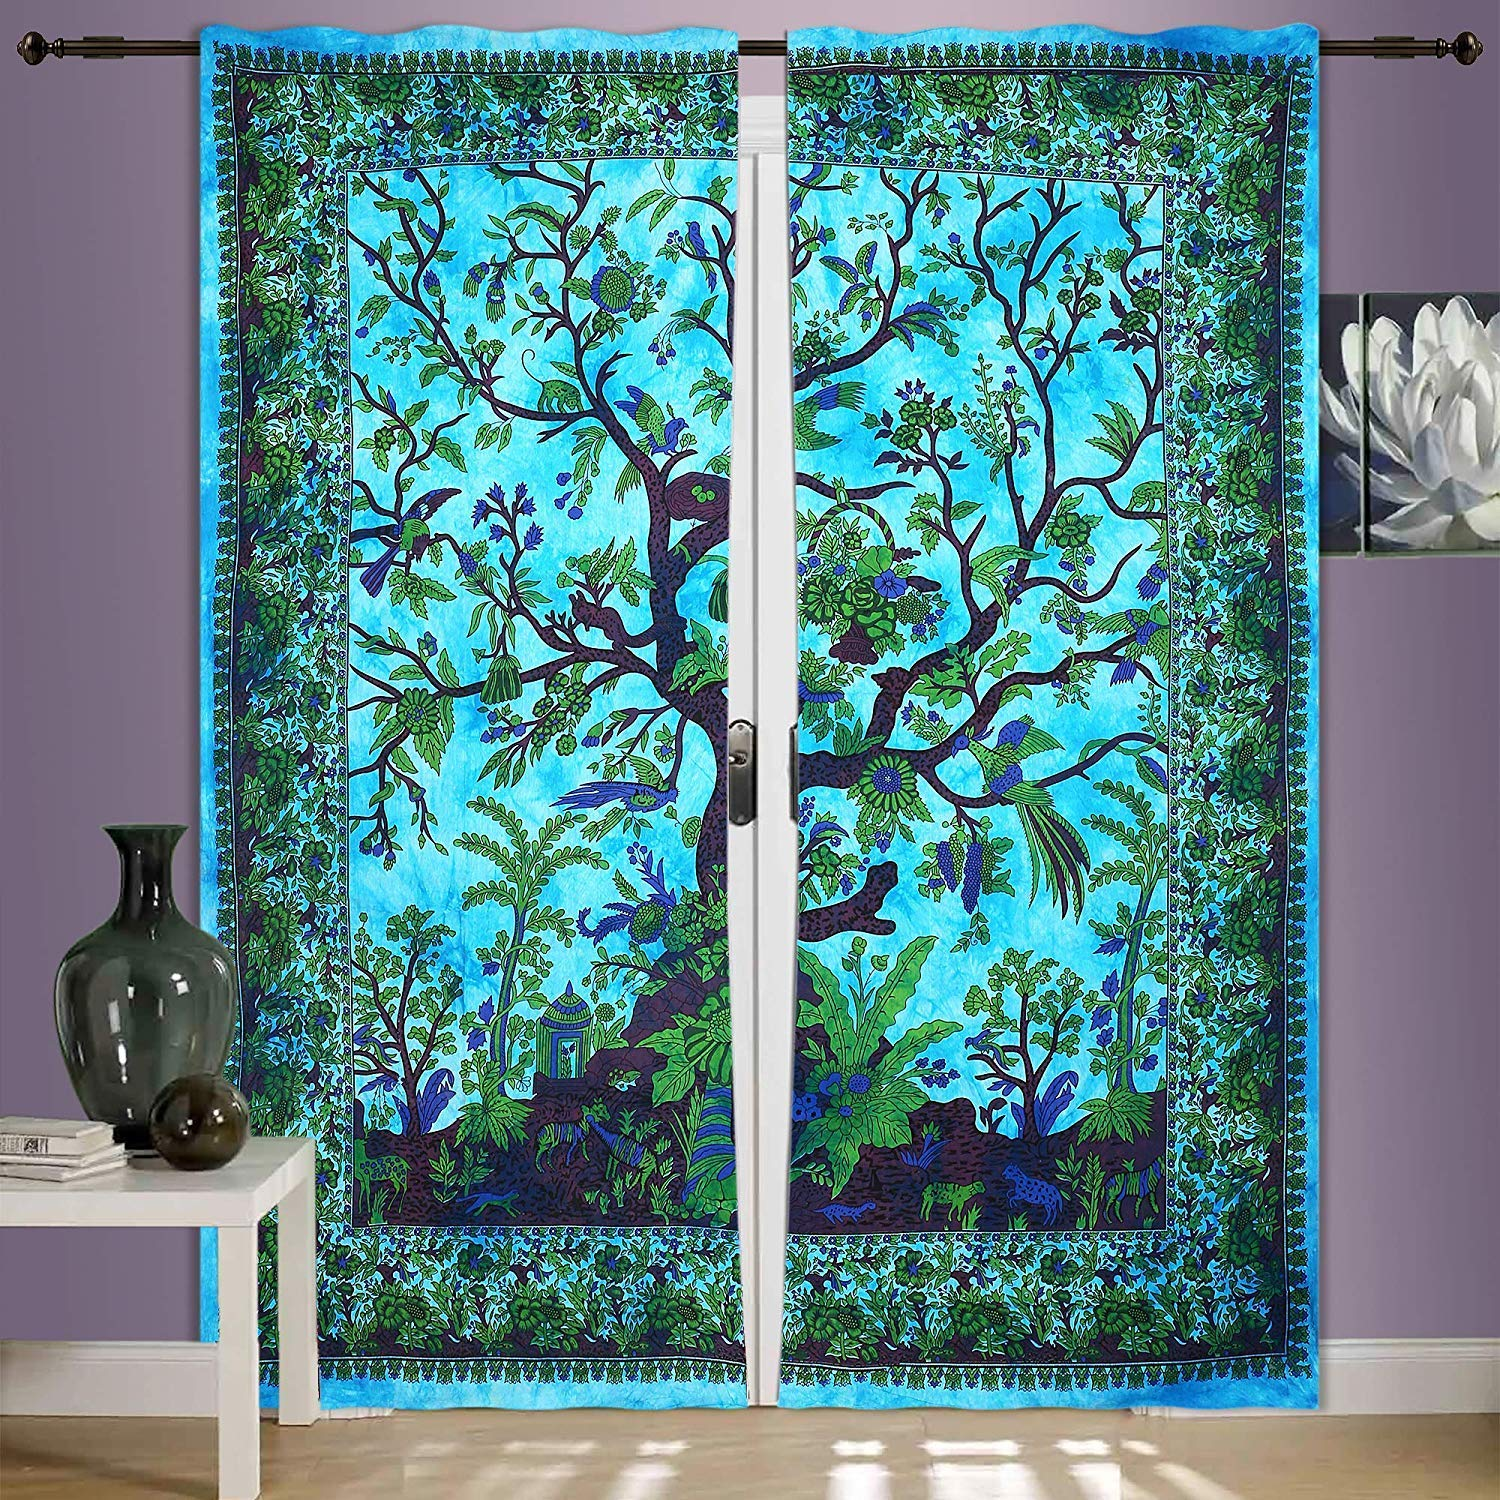 82 X 27 Inch Mandala Window Curtains Panels Pair 82 Length Set of 2,Bird Tapestry,Indian Hippie Curtains Bohemian Psychedelic TEXTILLHUB Terquies Tree of Life Curtain Wall Hanging,2 Panels Set